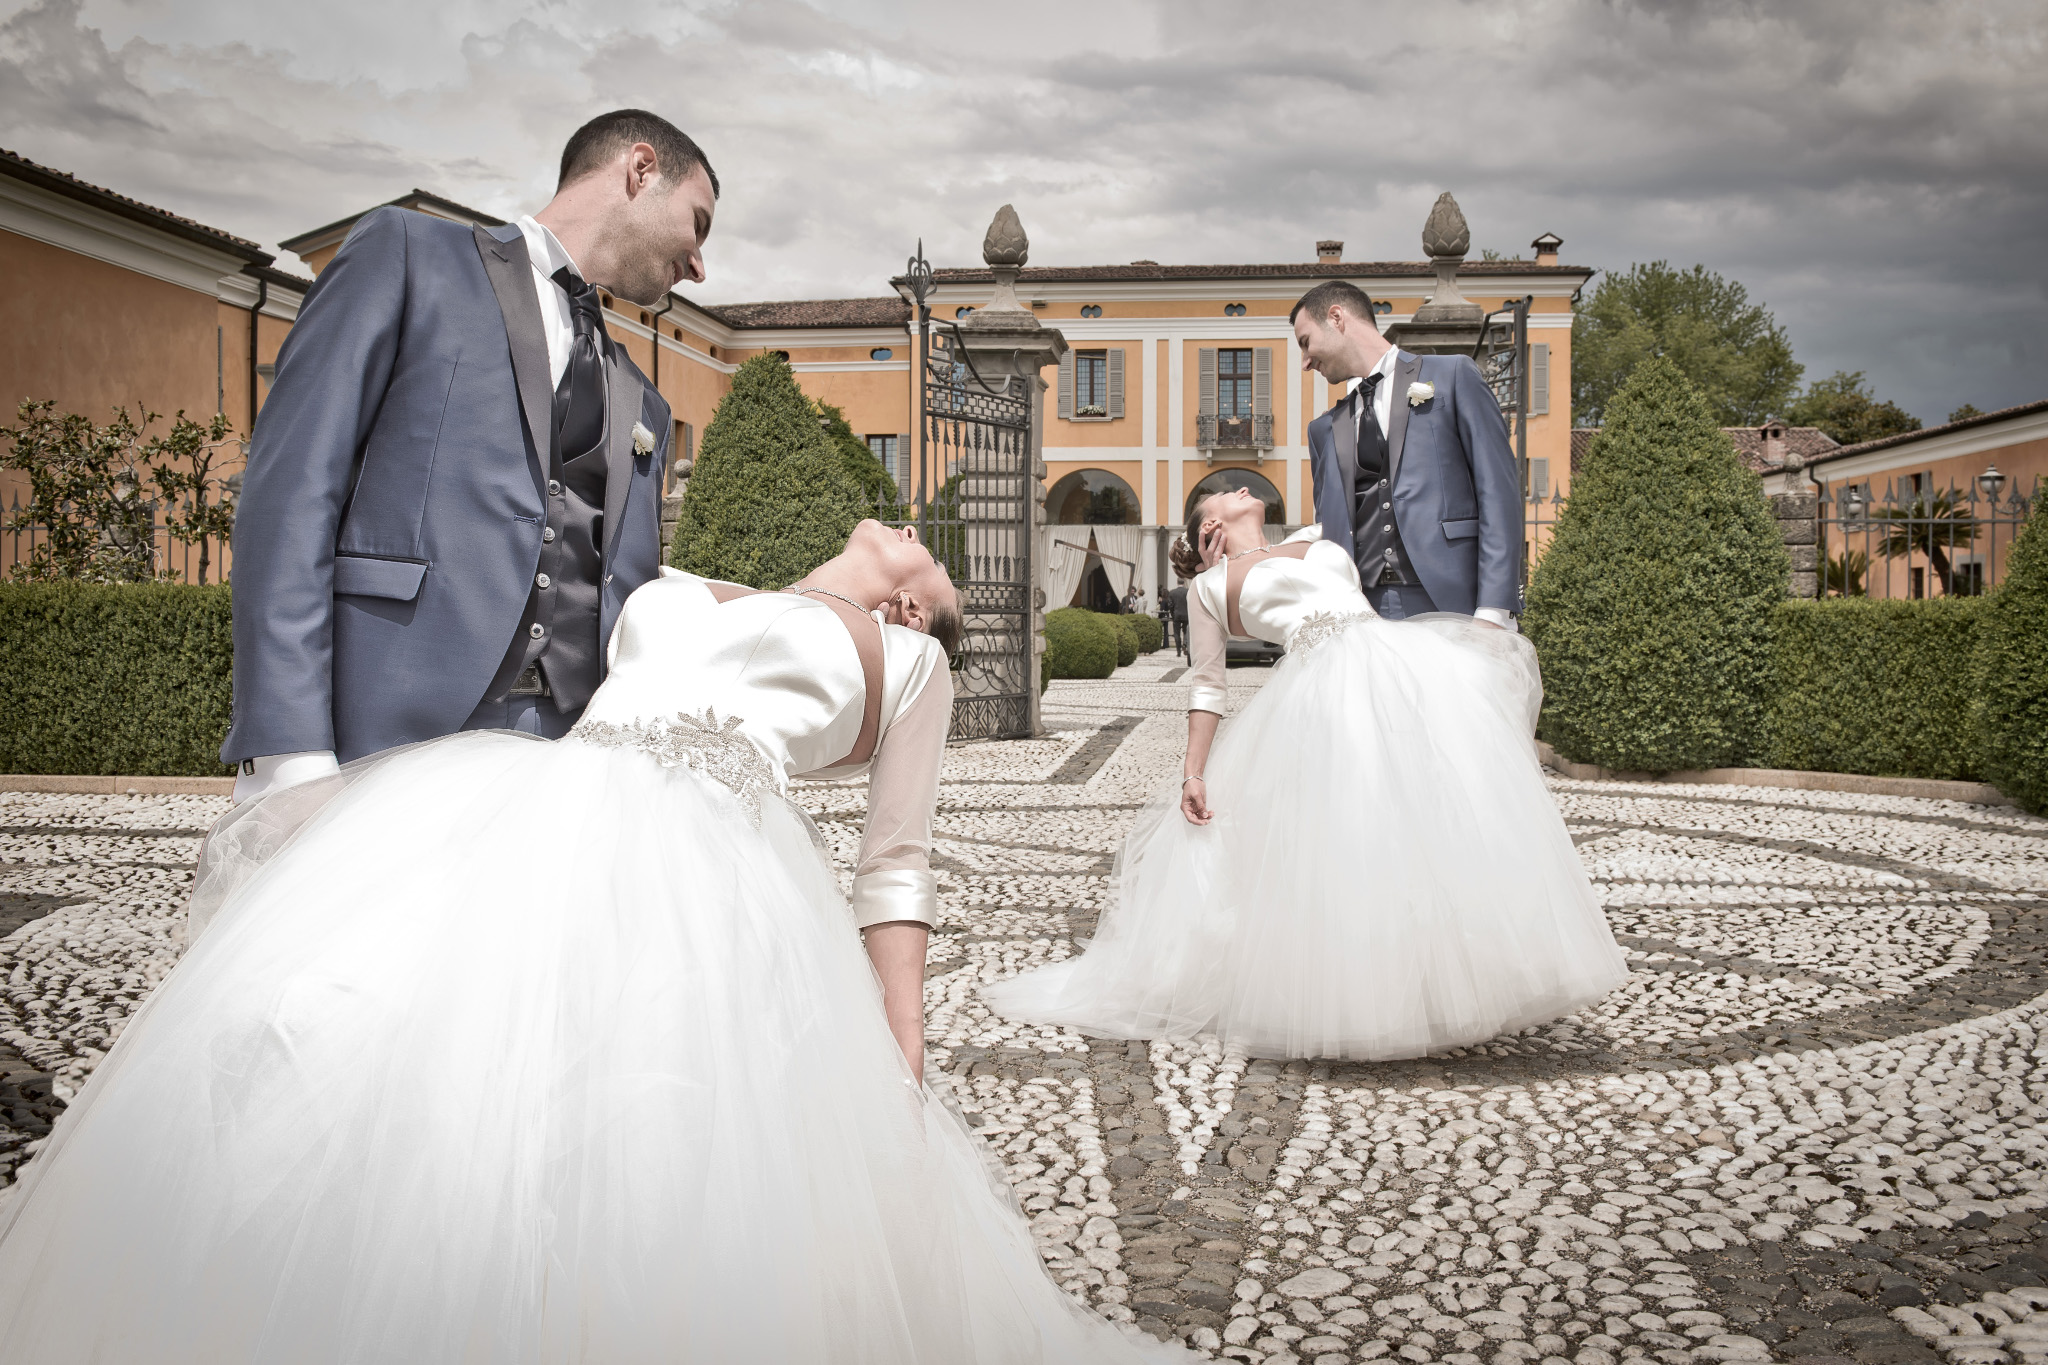 Wedding photographer, Brescia